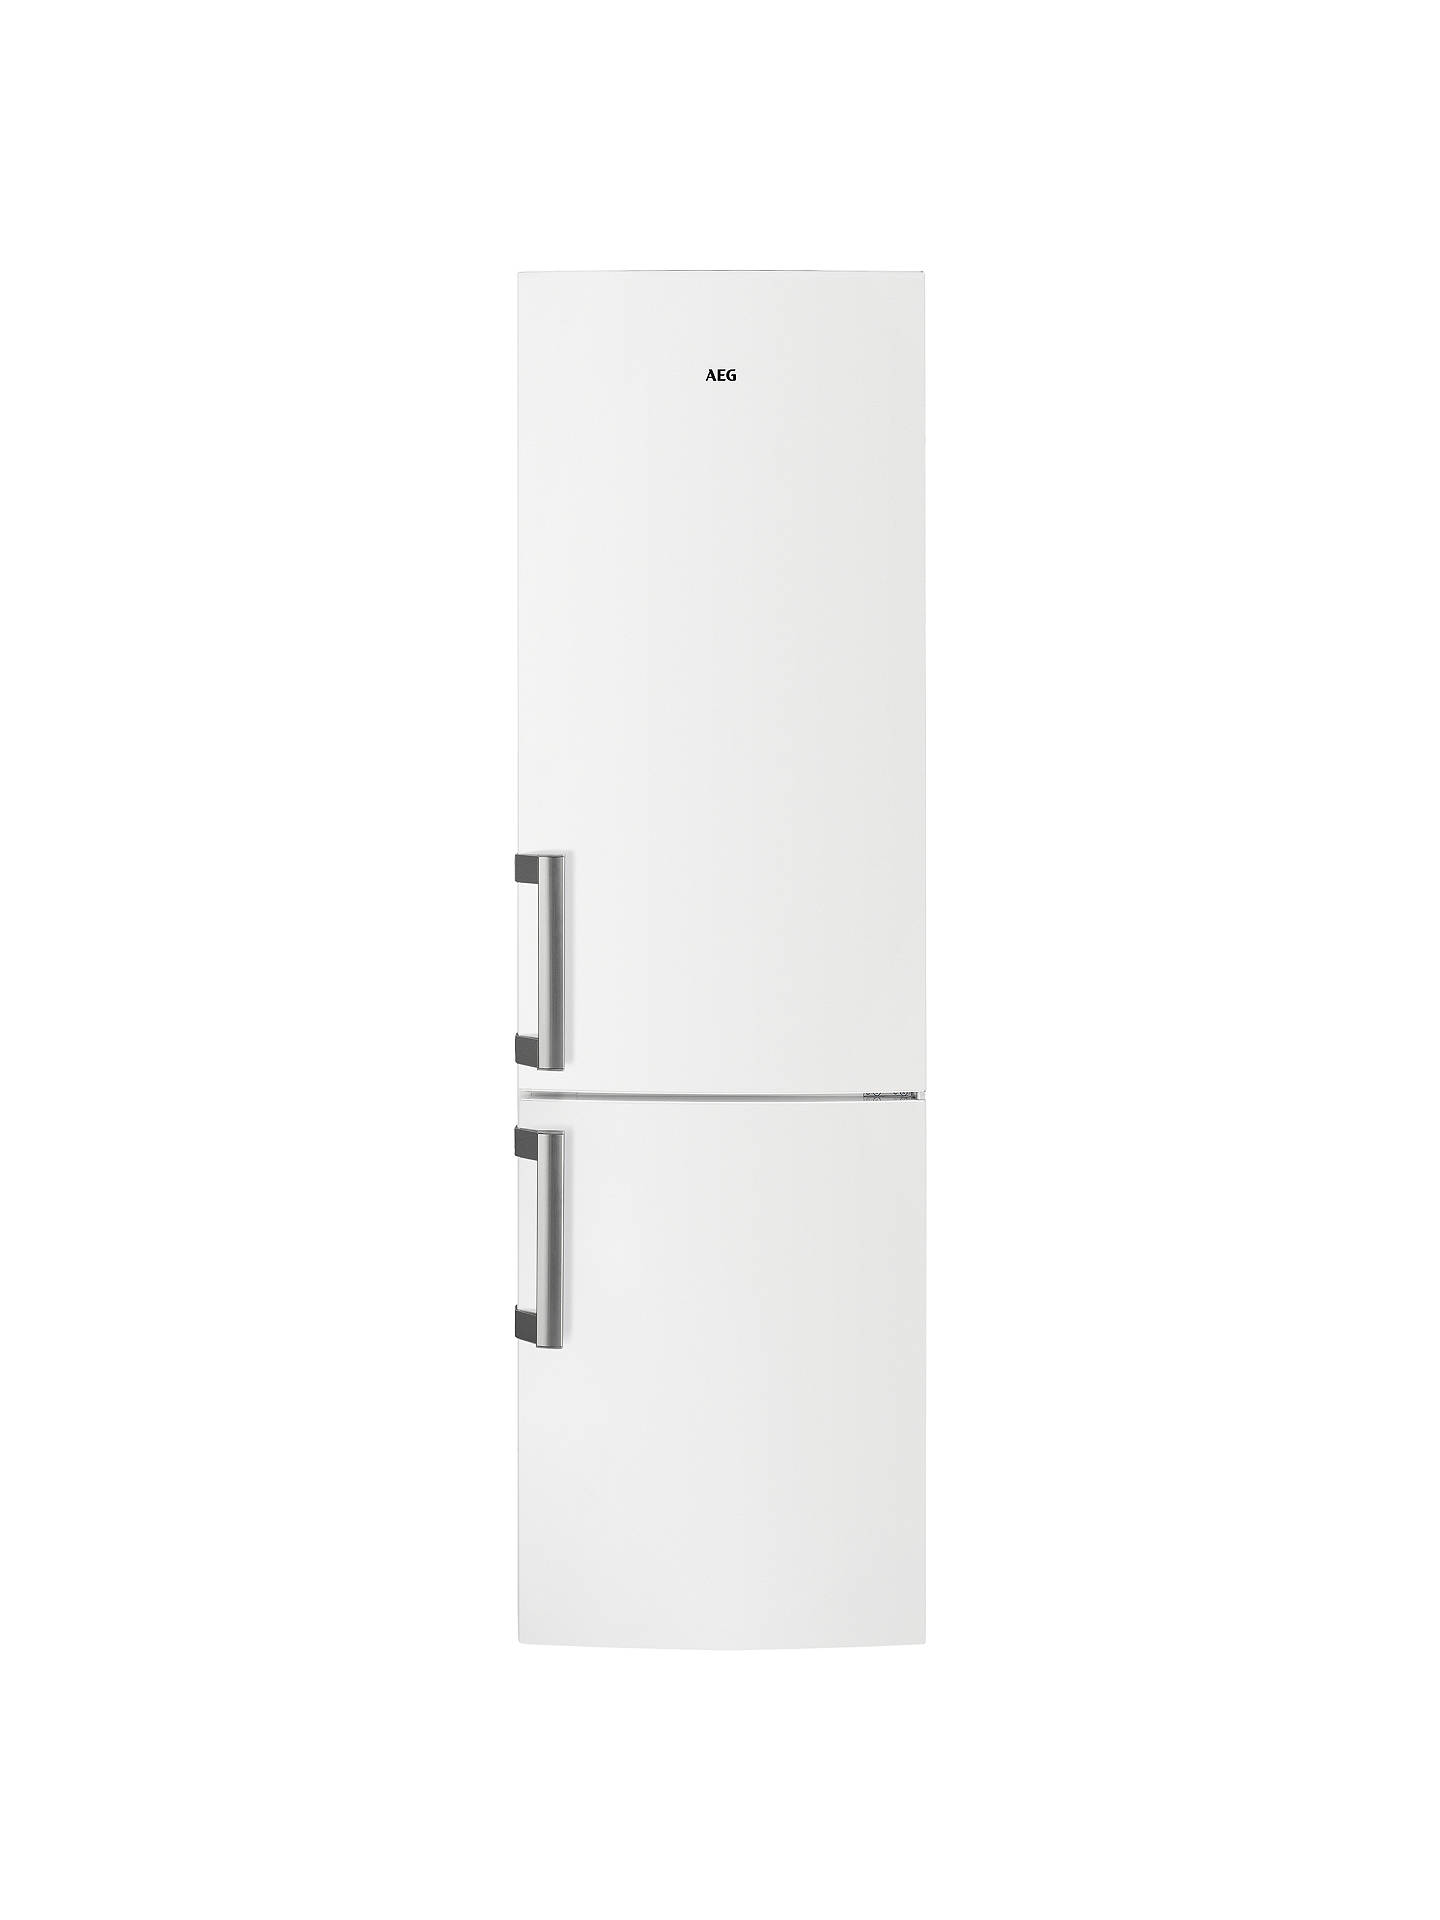 BuyAEG RCB53725VW Freestanding CustomFlex Fridge Freezer, A++ Energy Rating, 60cm Wide, White Online at johnlewis.com